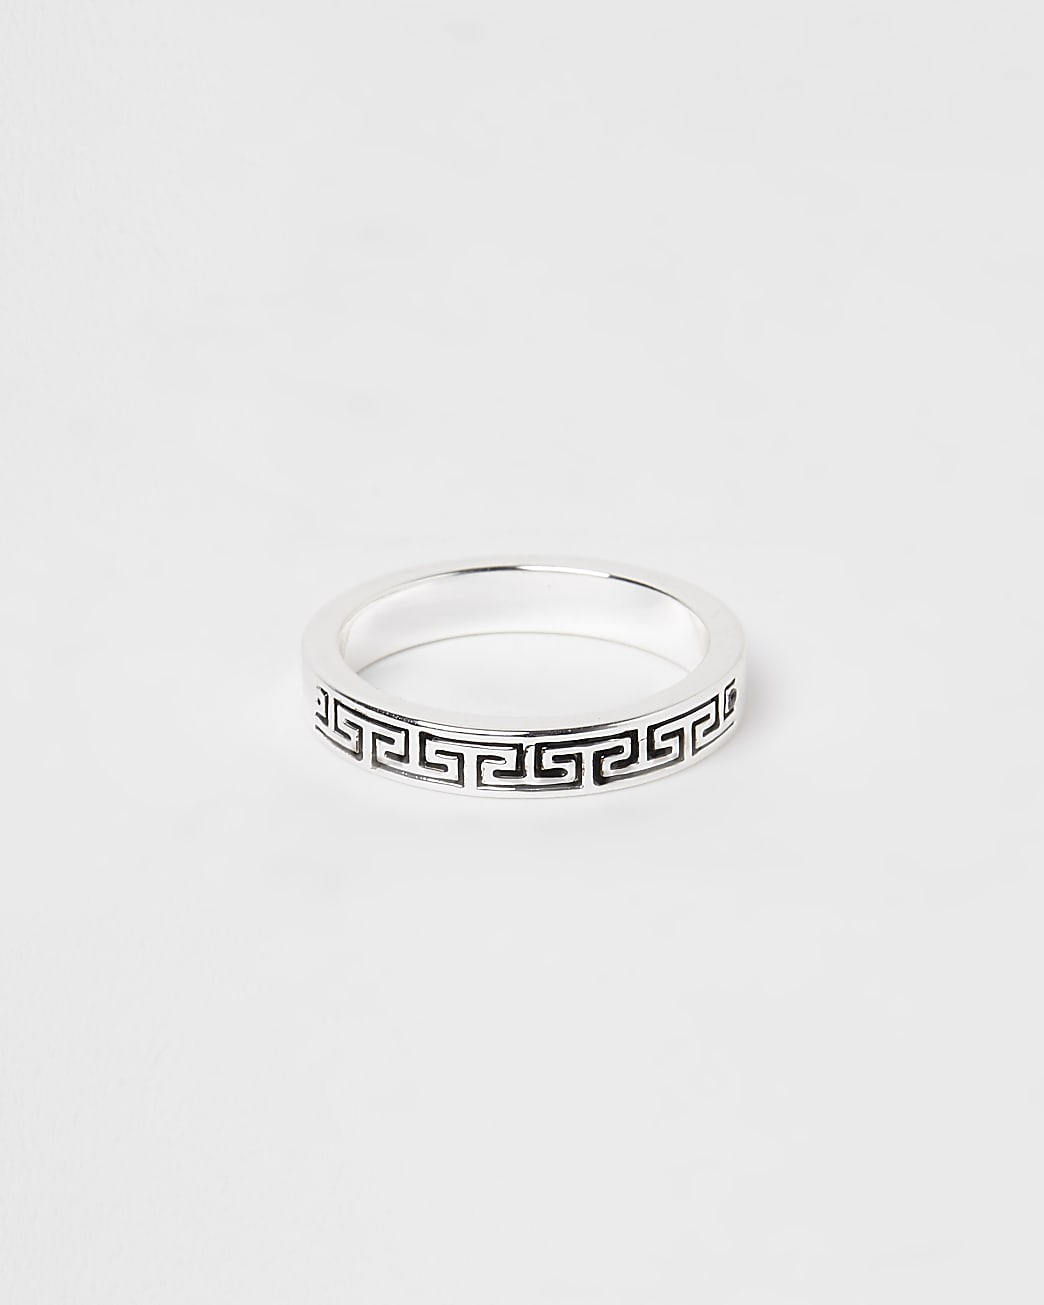 Silver engraved band ring